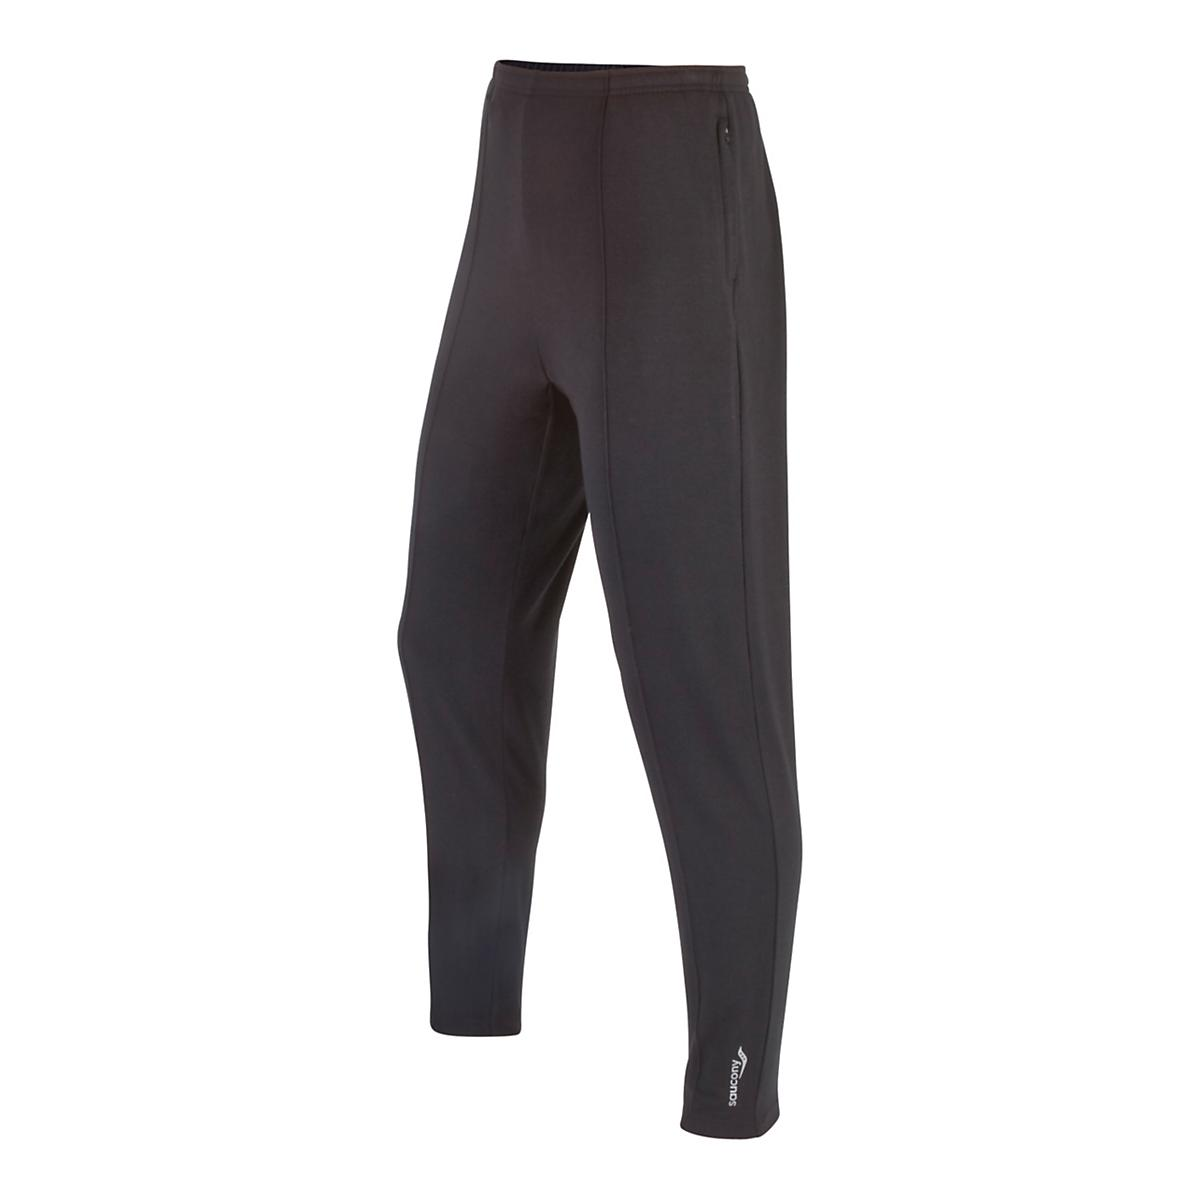 Men's Saucony�Boston Pant